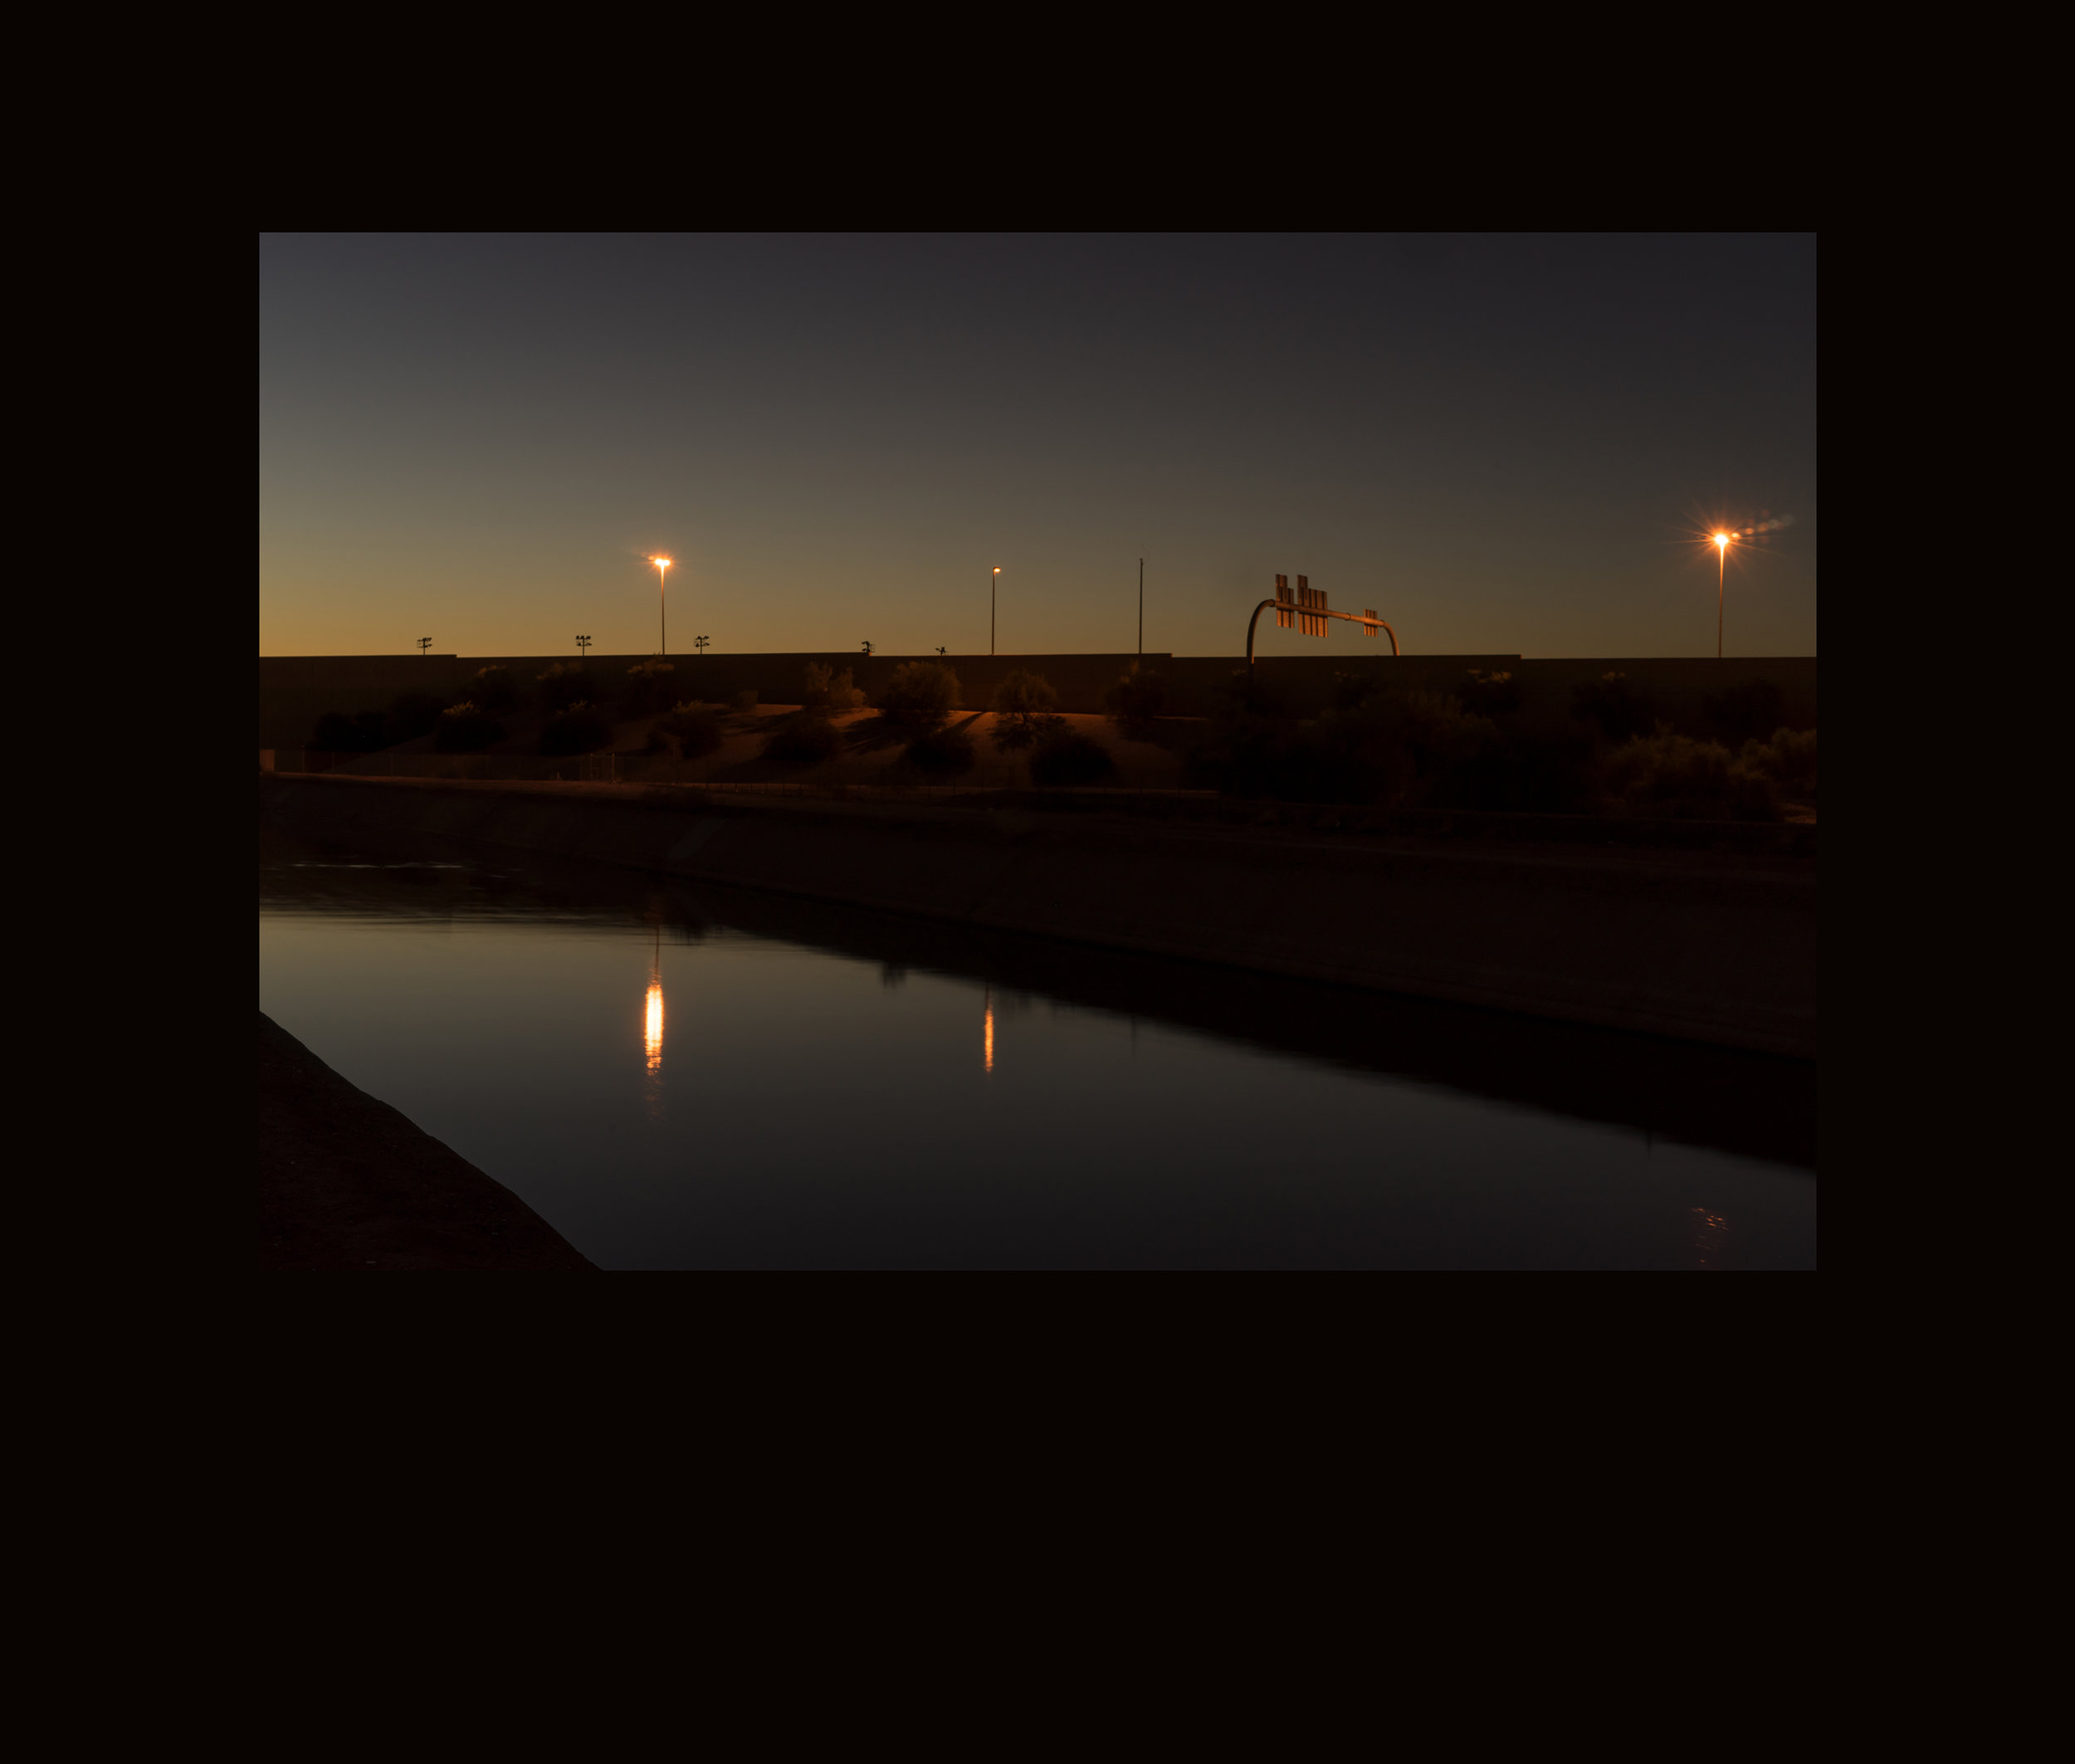 Night Water // Grand Canal at SR 51, Phoenix, AZ, 2016.